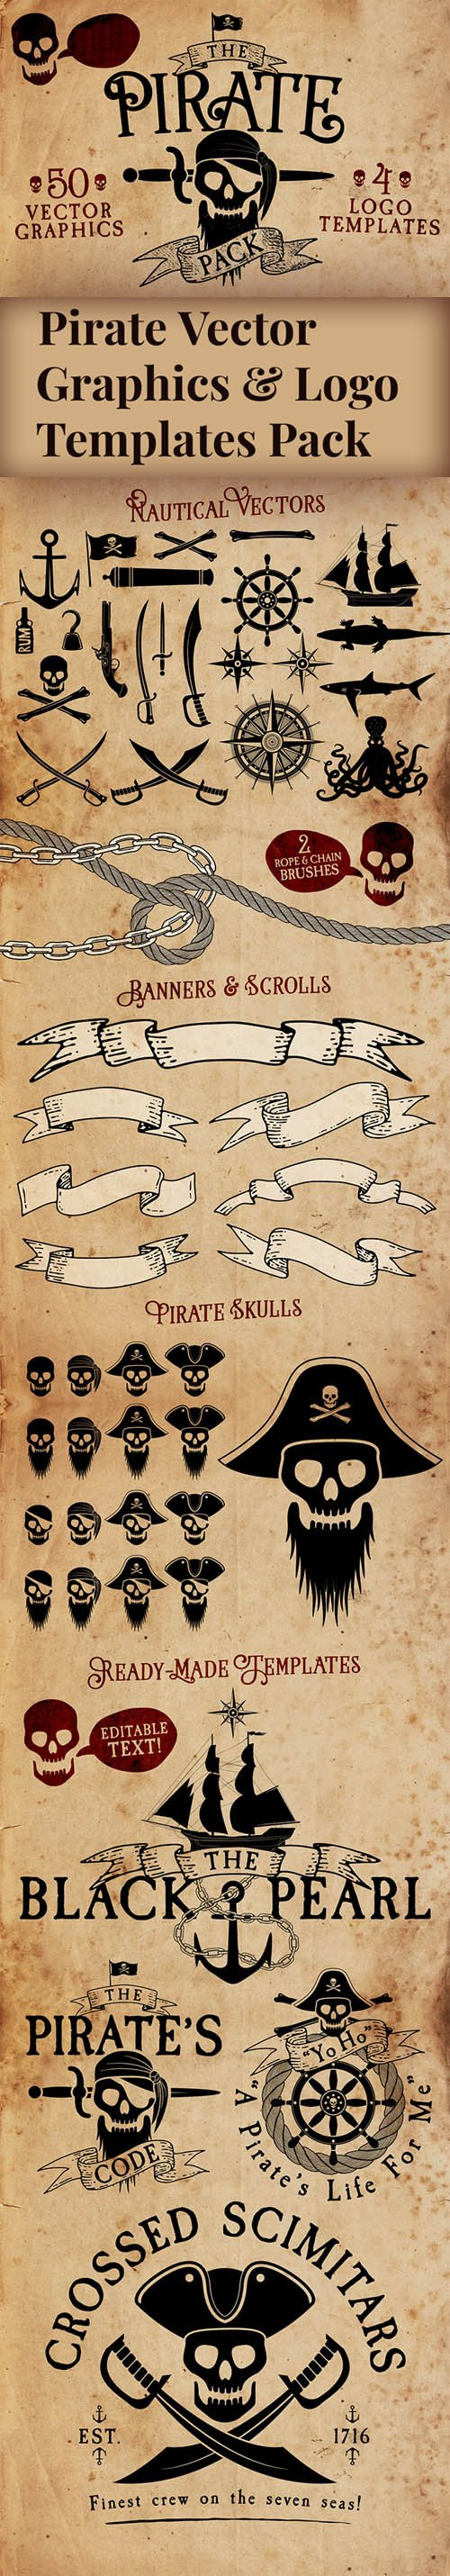 Pirate Vector Graphics & Logo Vector Templates Pack [Ai/EPS]